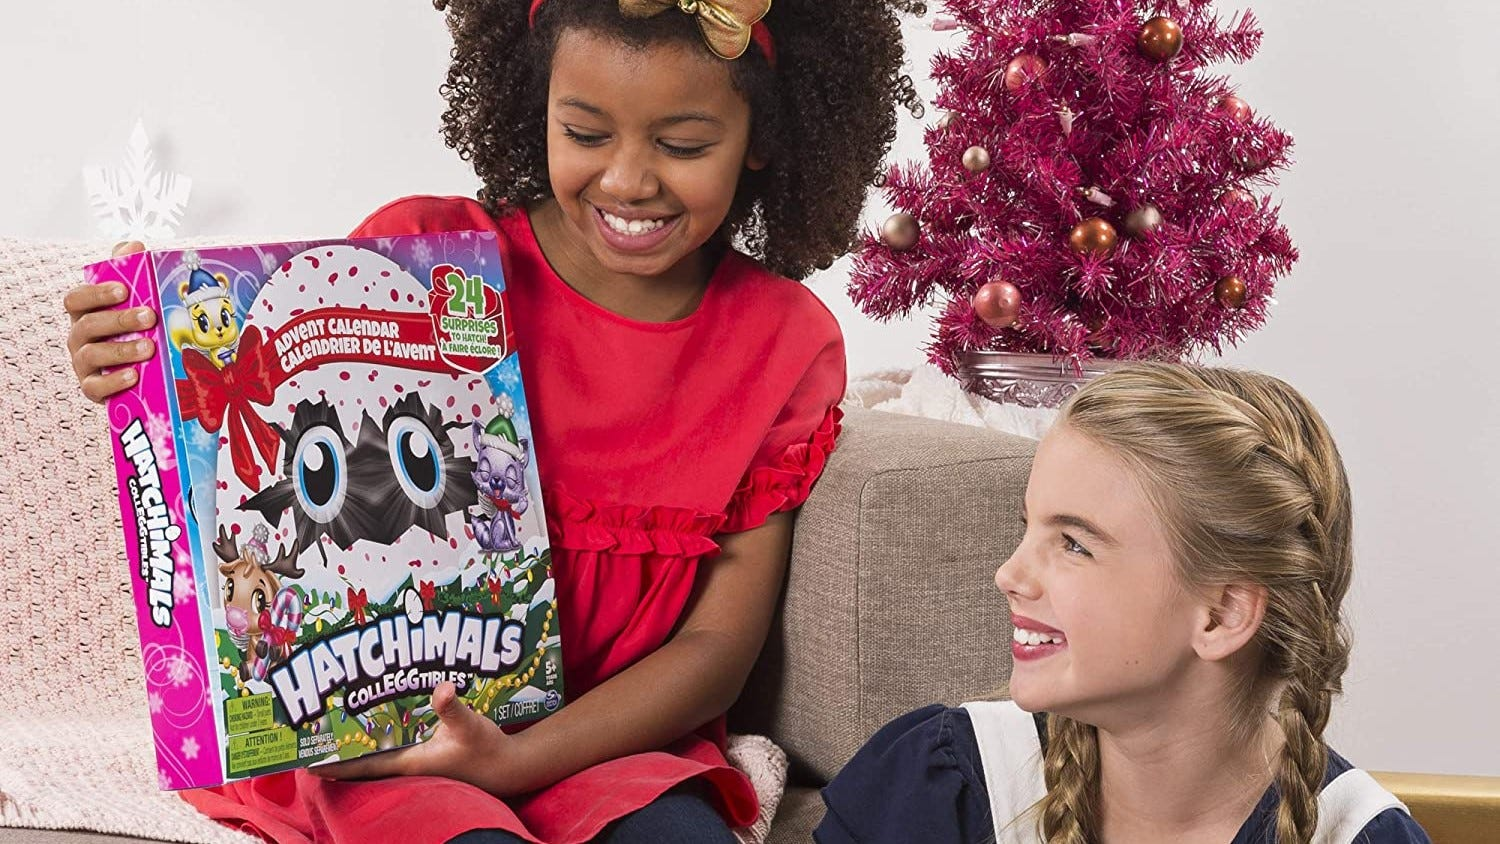 Two young girls looking at the Hatchimals Advent Calendar box.